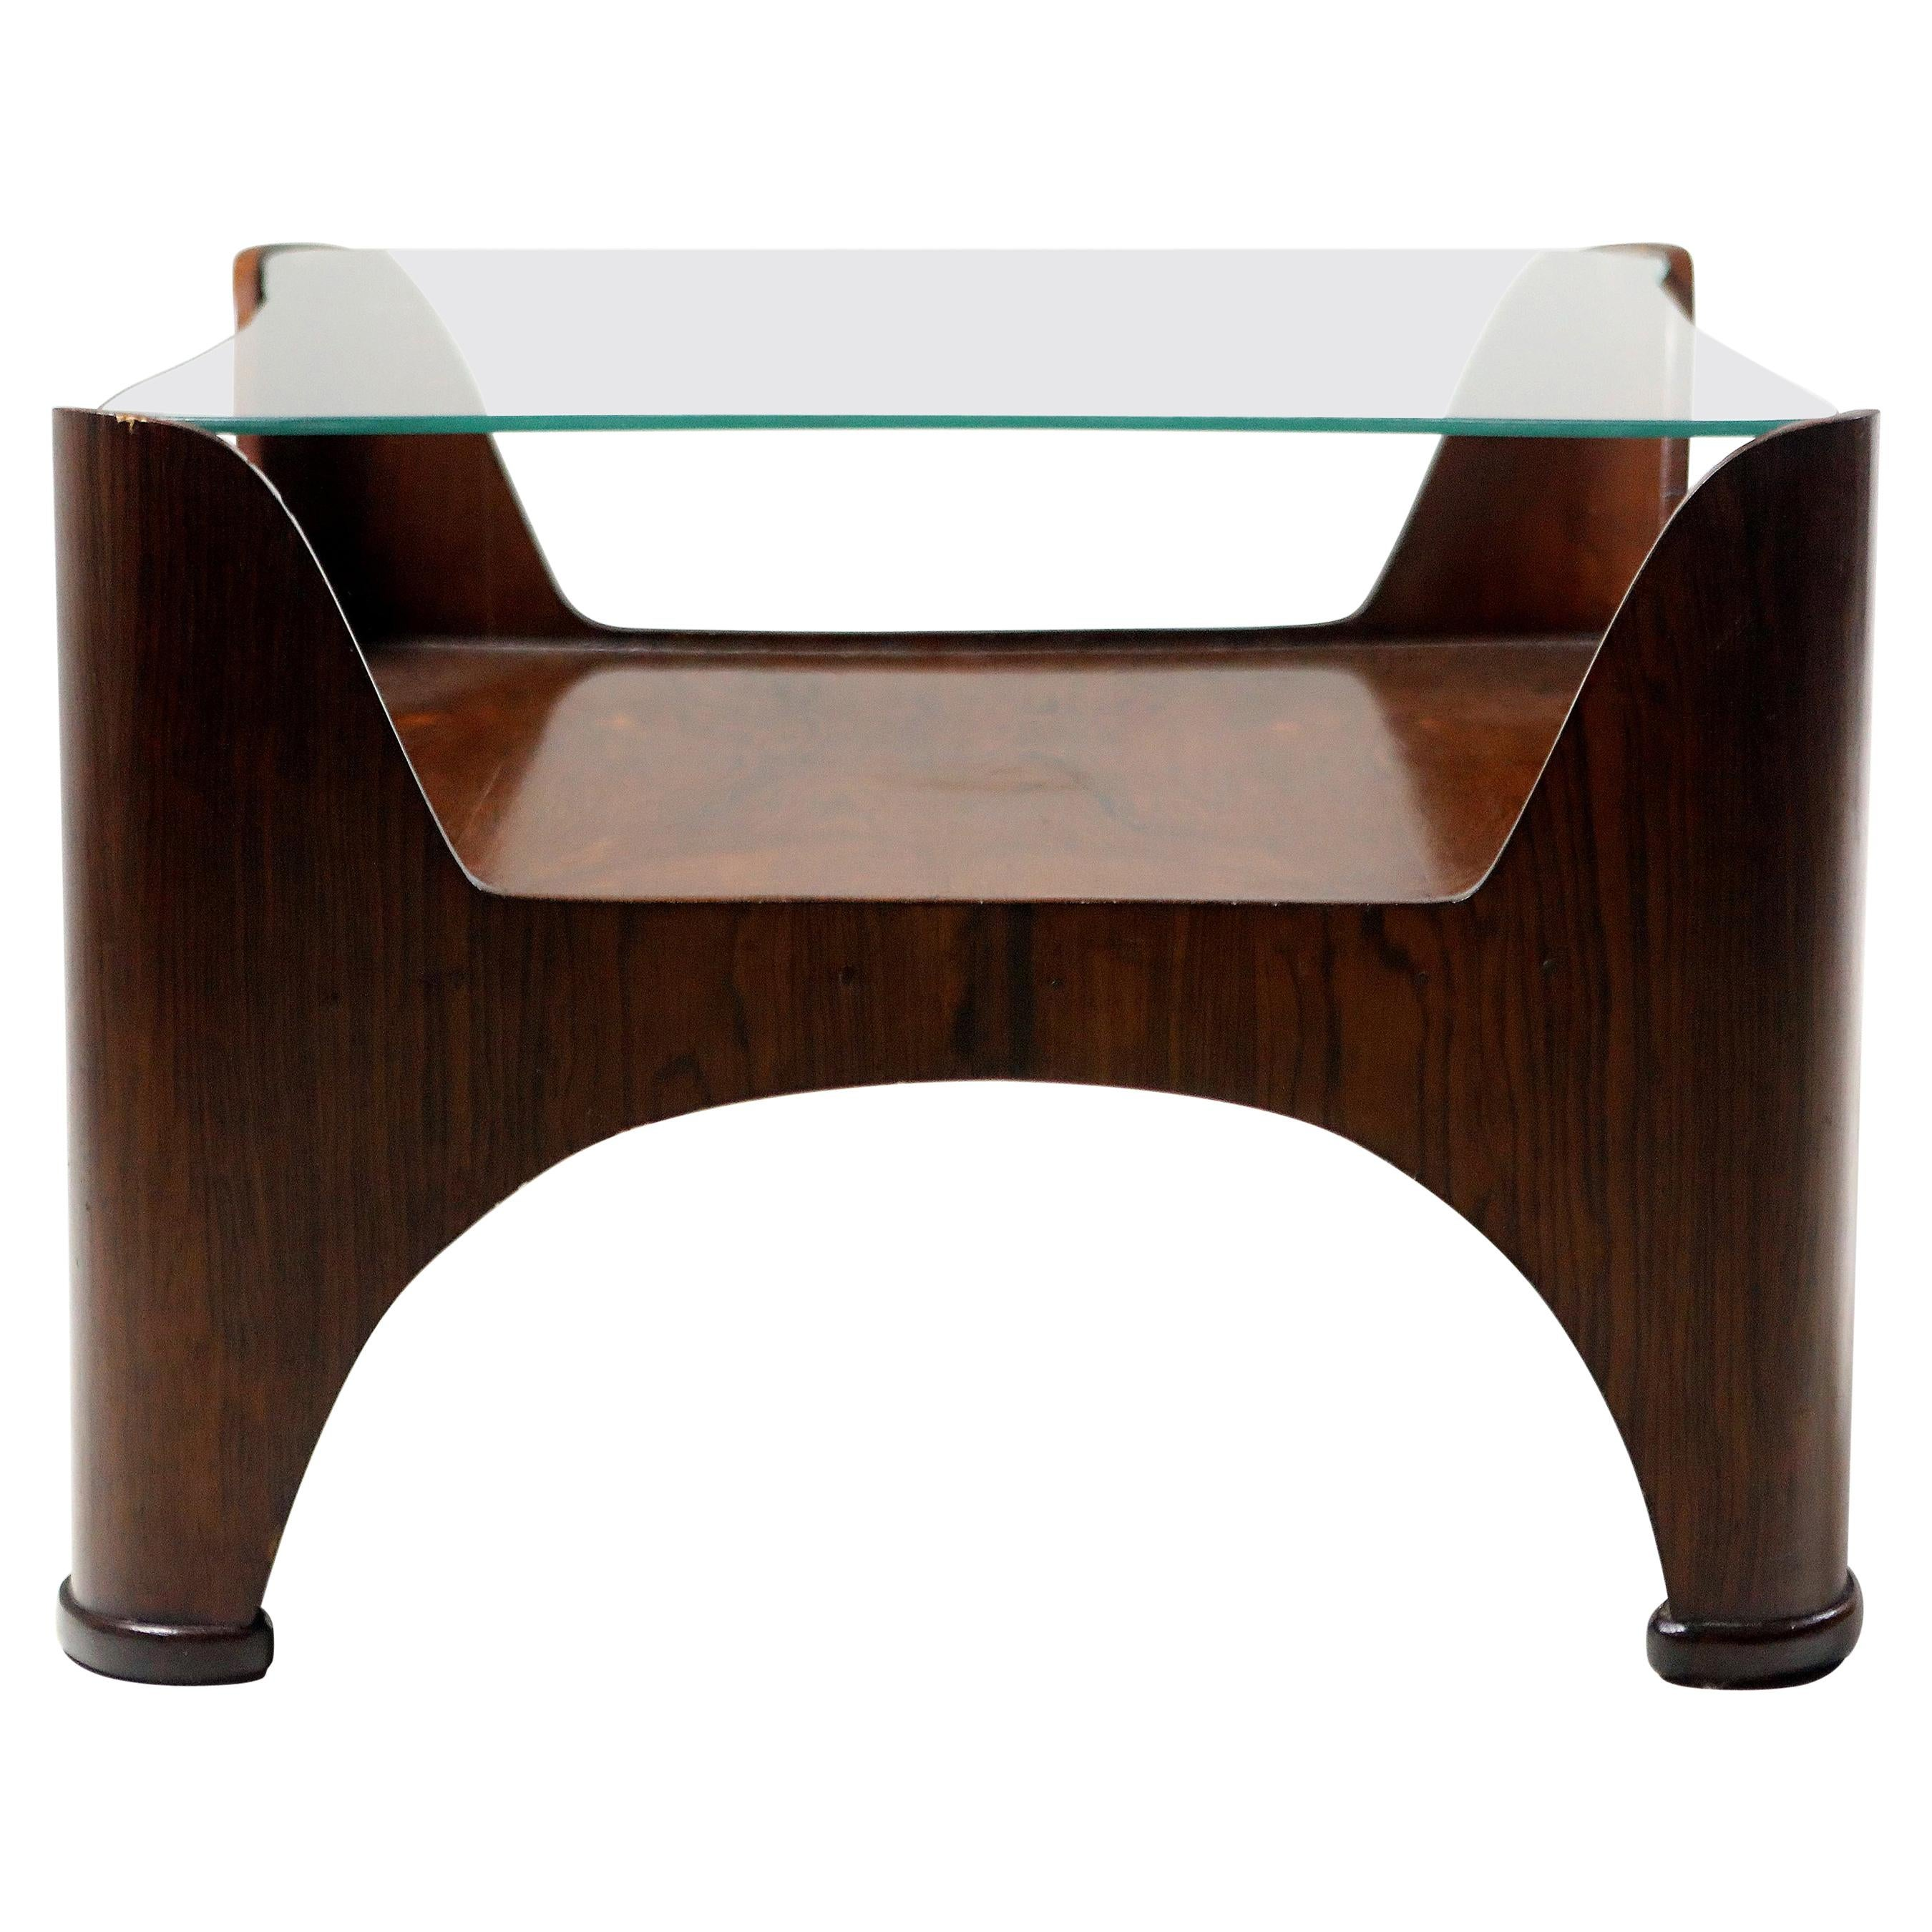 Mid-Century Modern Square Glass-Top Hardwood End Table, Brazil, 1960s